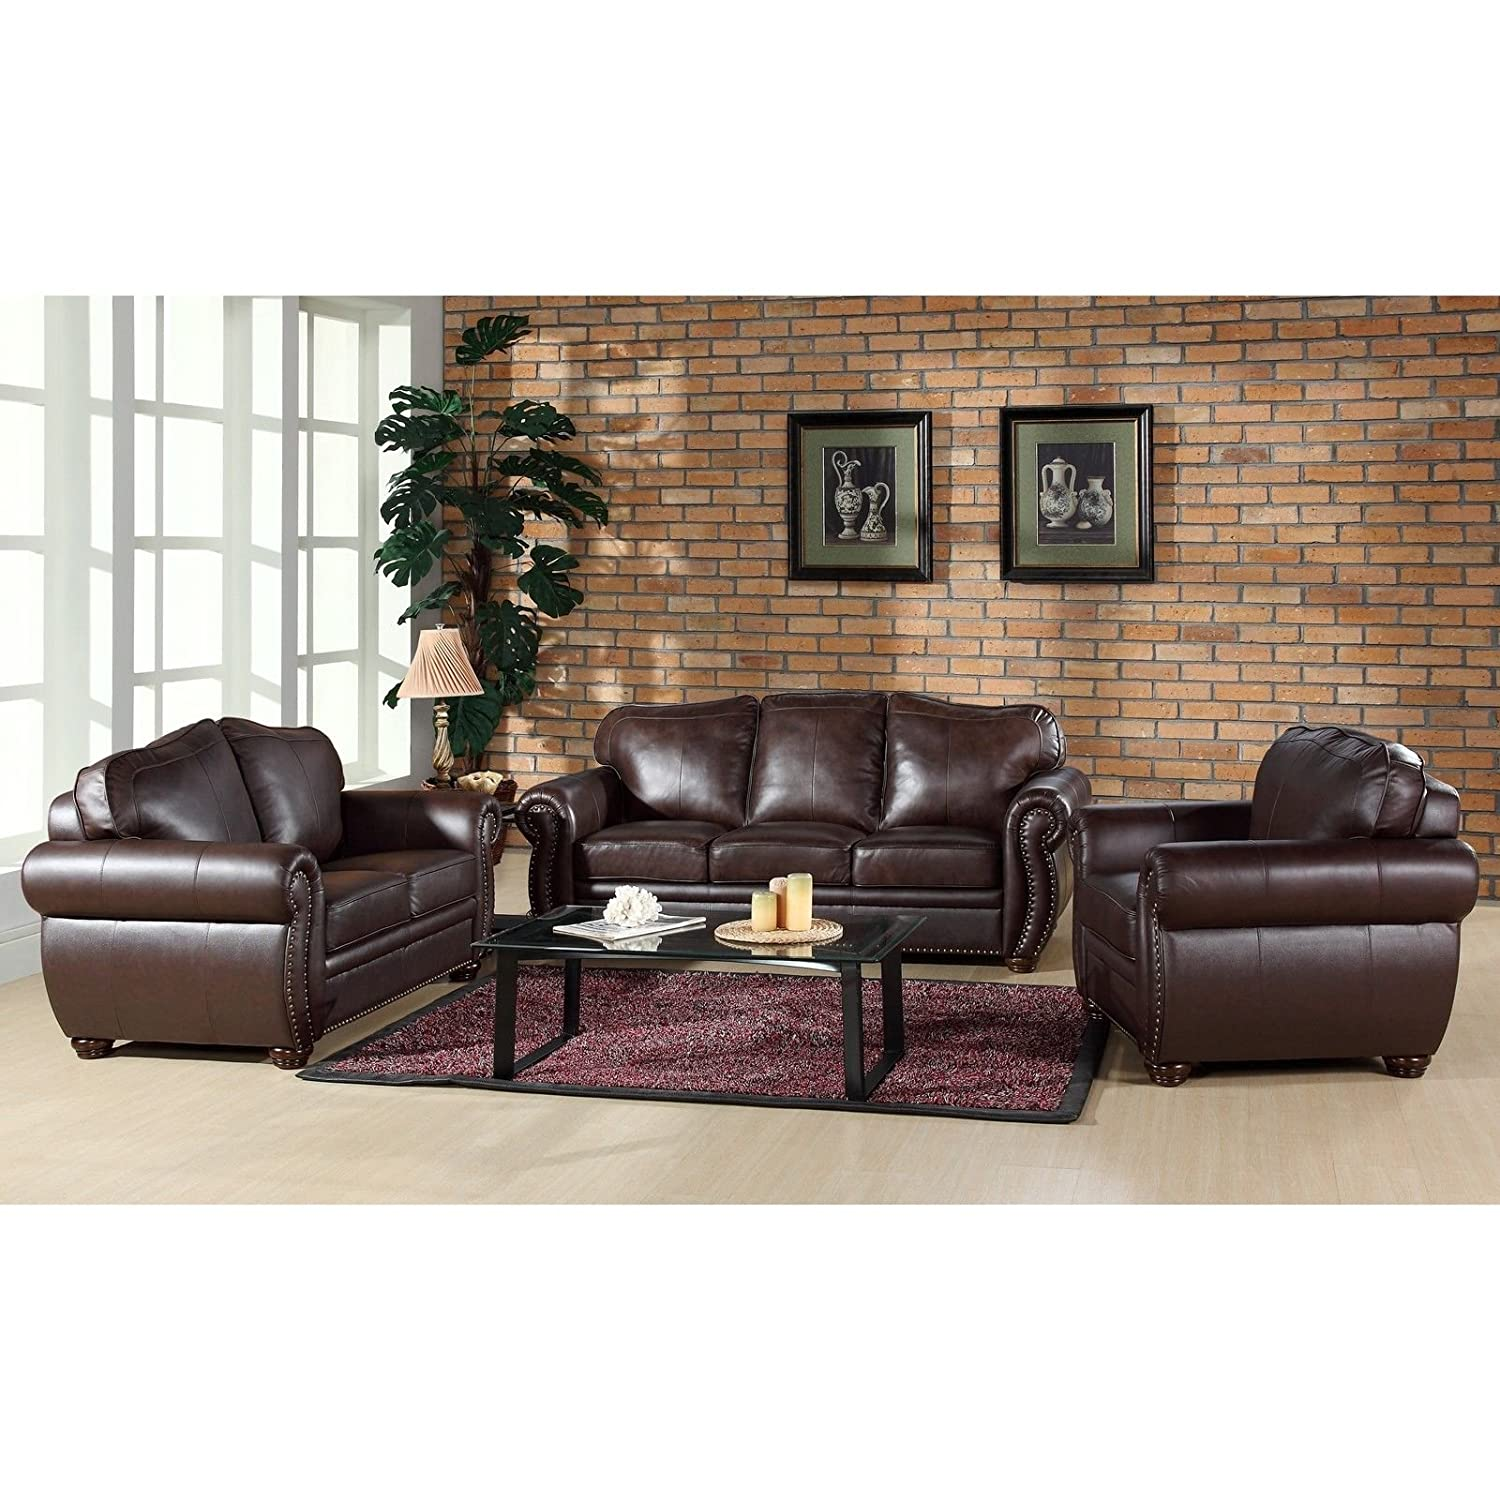 amazoncom metro shop abbyson living richfield premium topgrain leather sofa loveseat and armchair kitchen u0026 dining